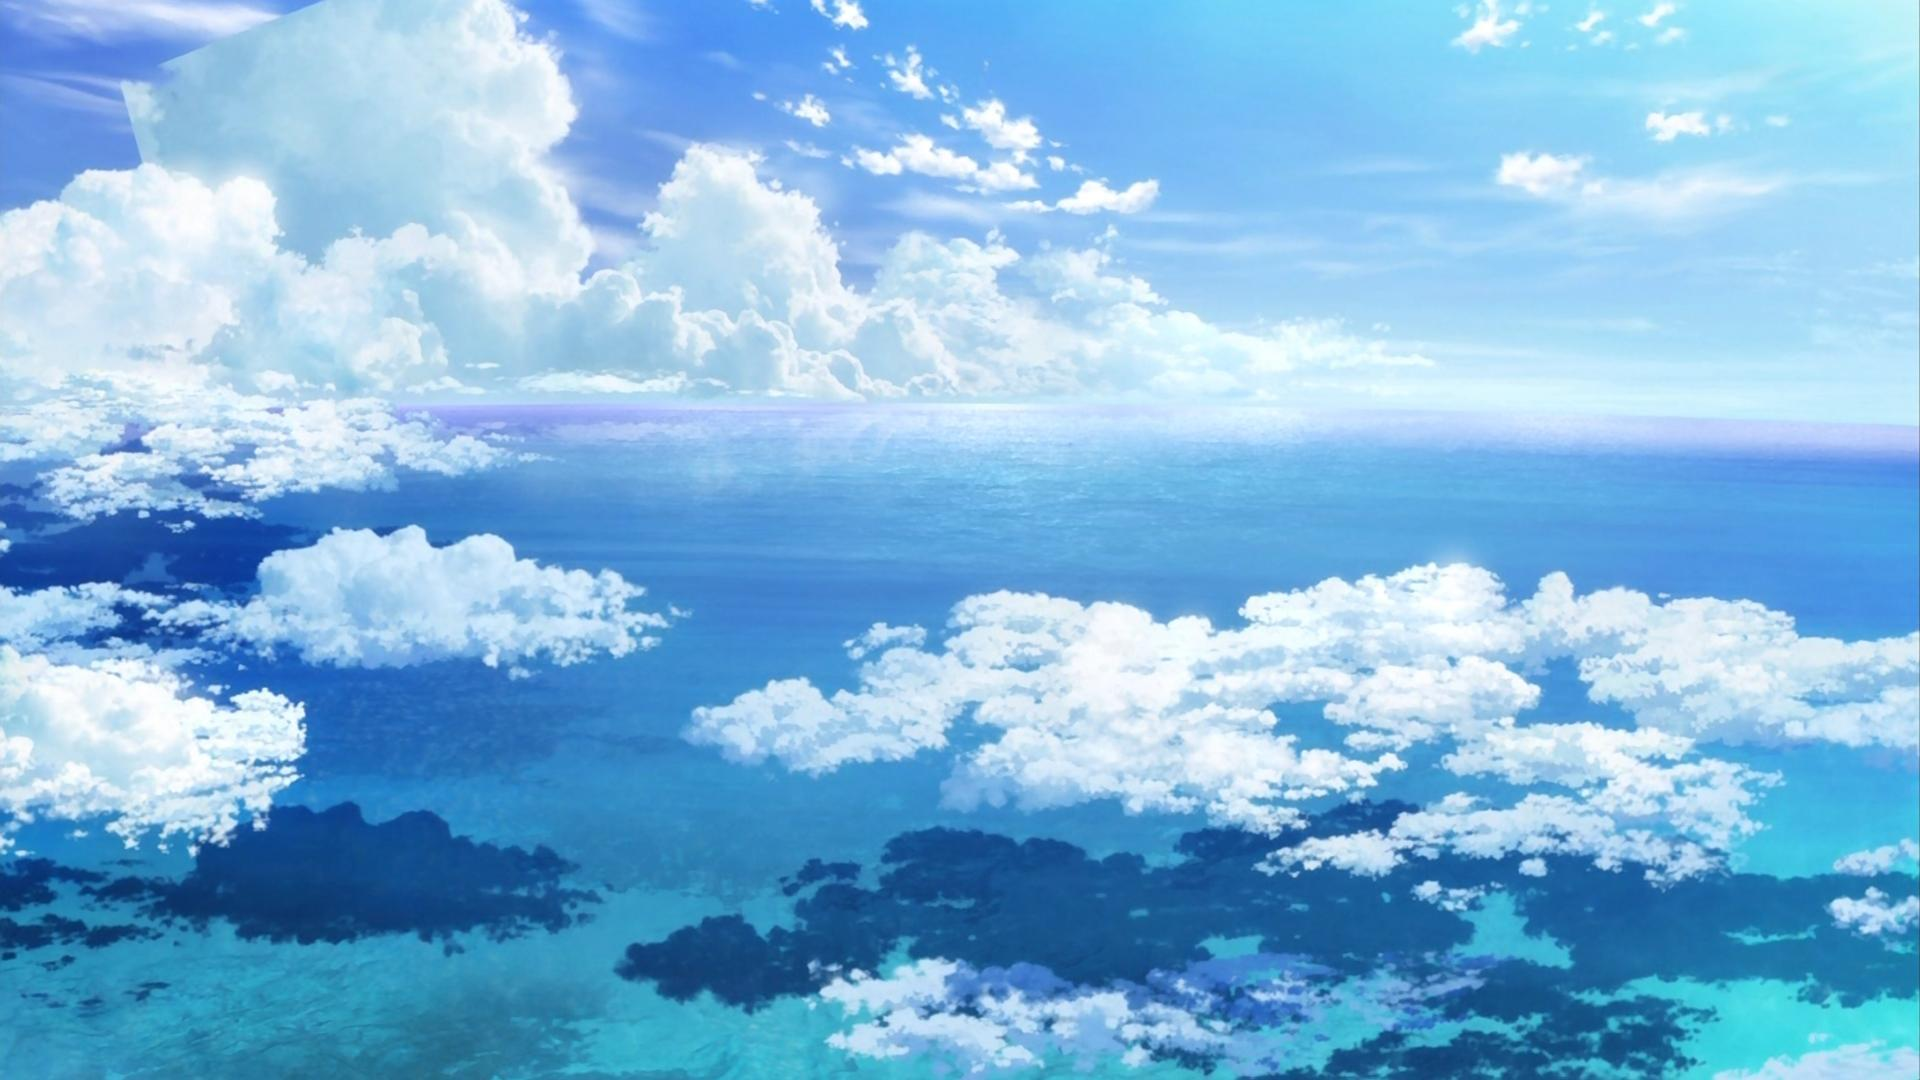 16 Anime Wallpaper Sky Iphone Download